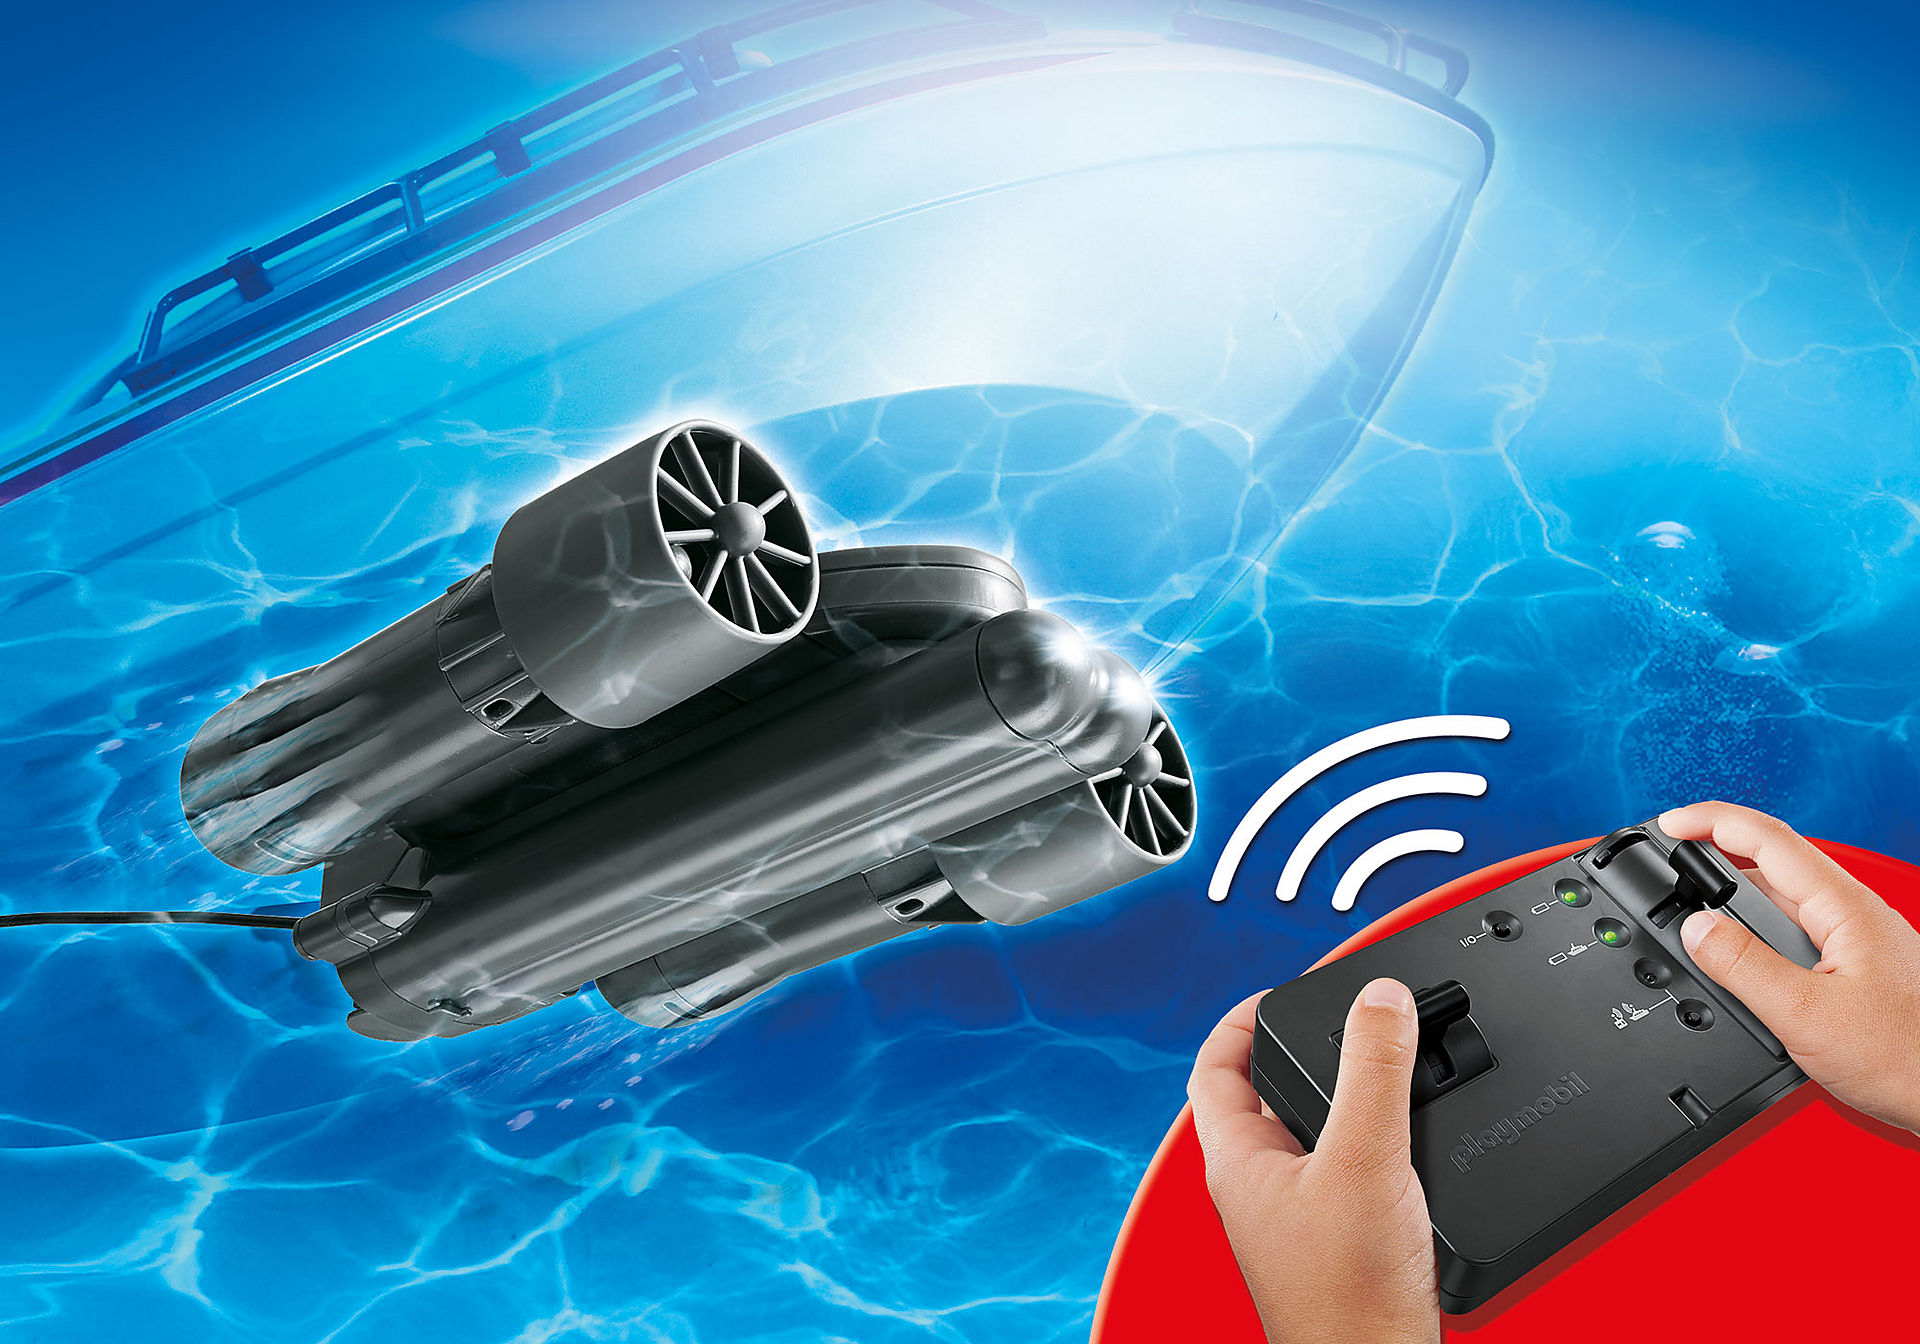 http://media.playmobil.com/i/playmobil/9853_product_detail/Moteur submersible avec radiocommande